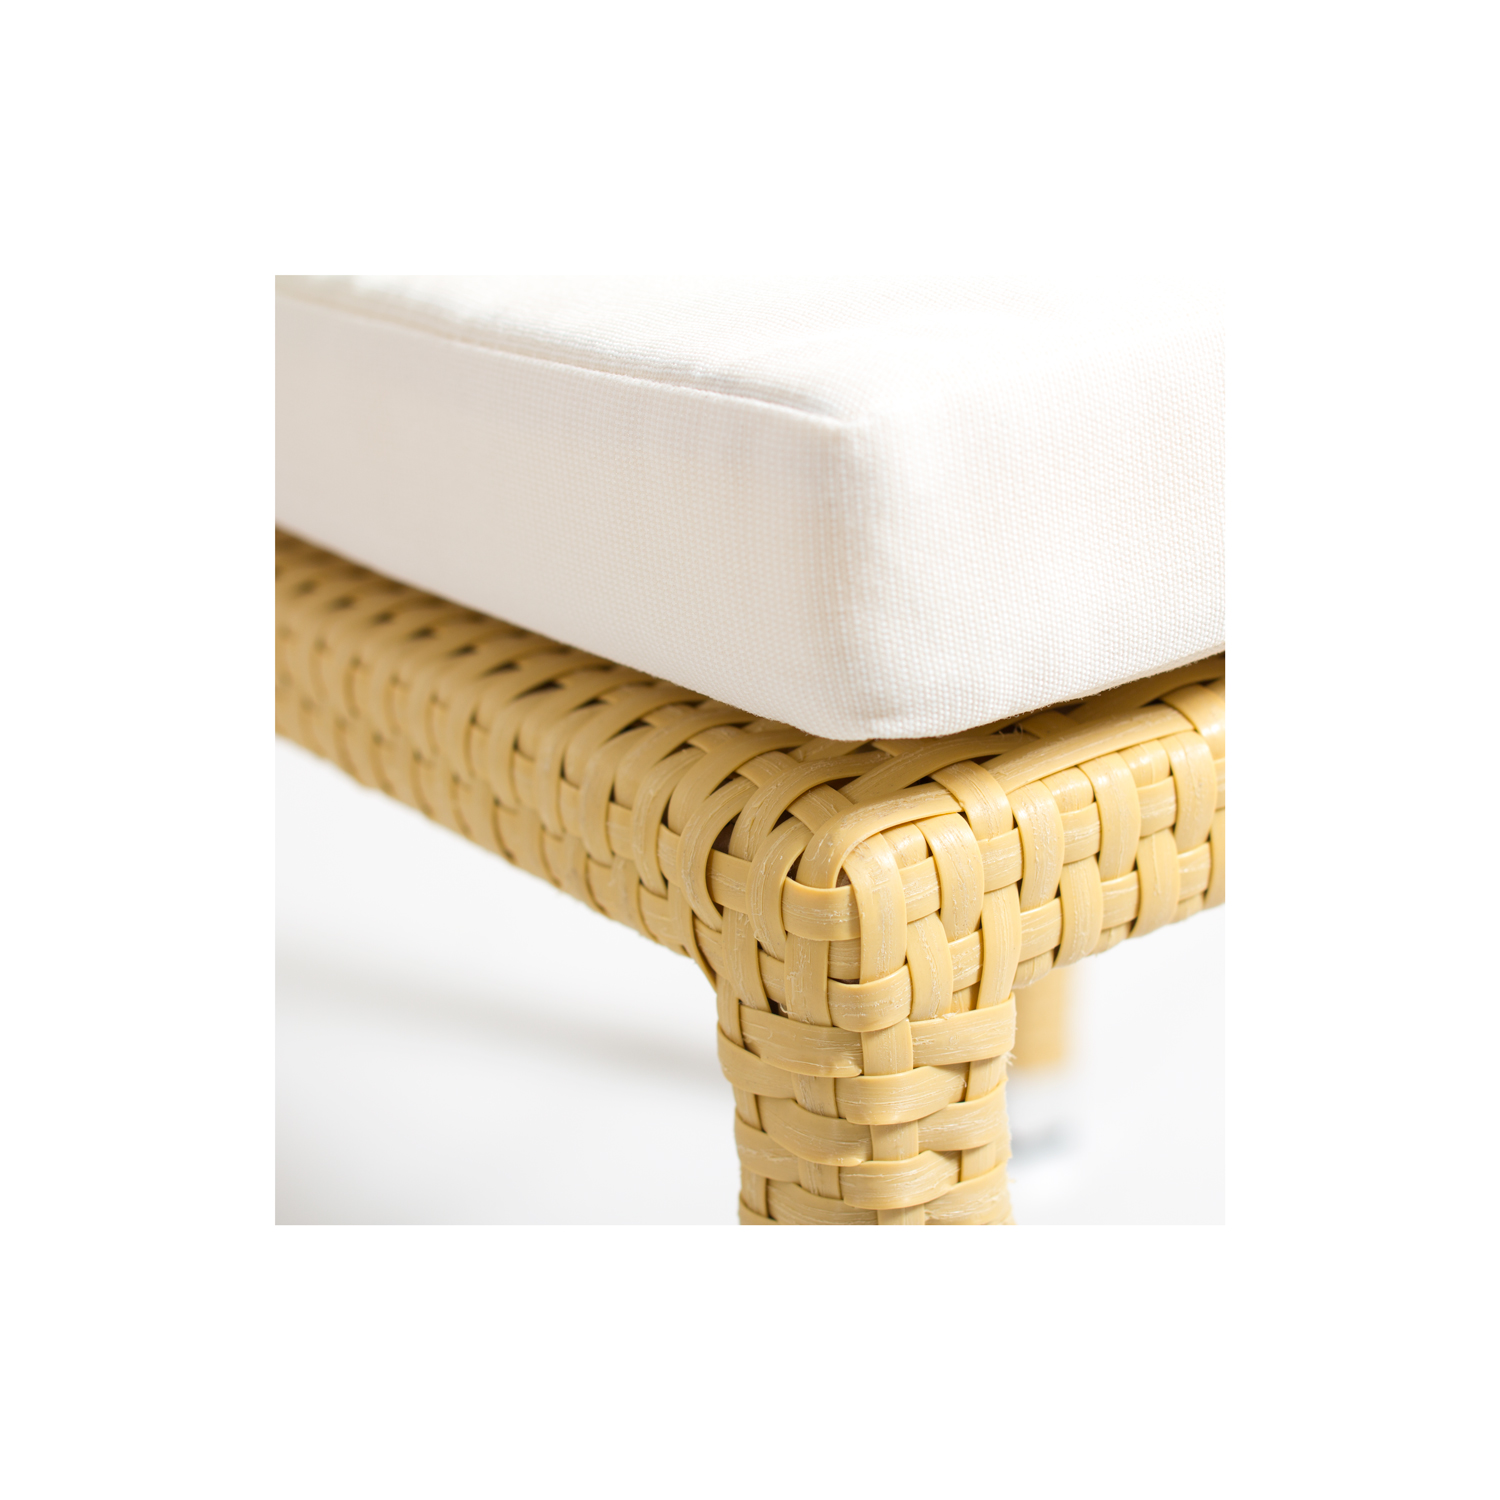 bamboo-armless-chair-detail.jpg